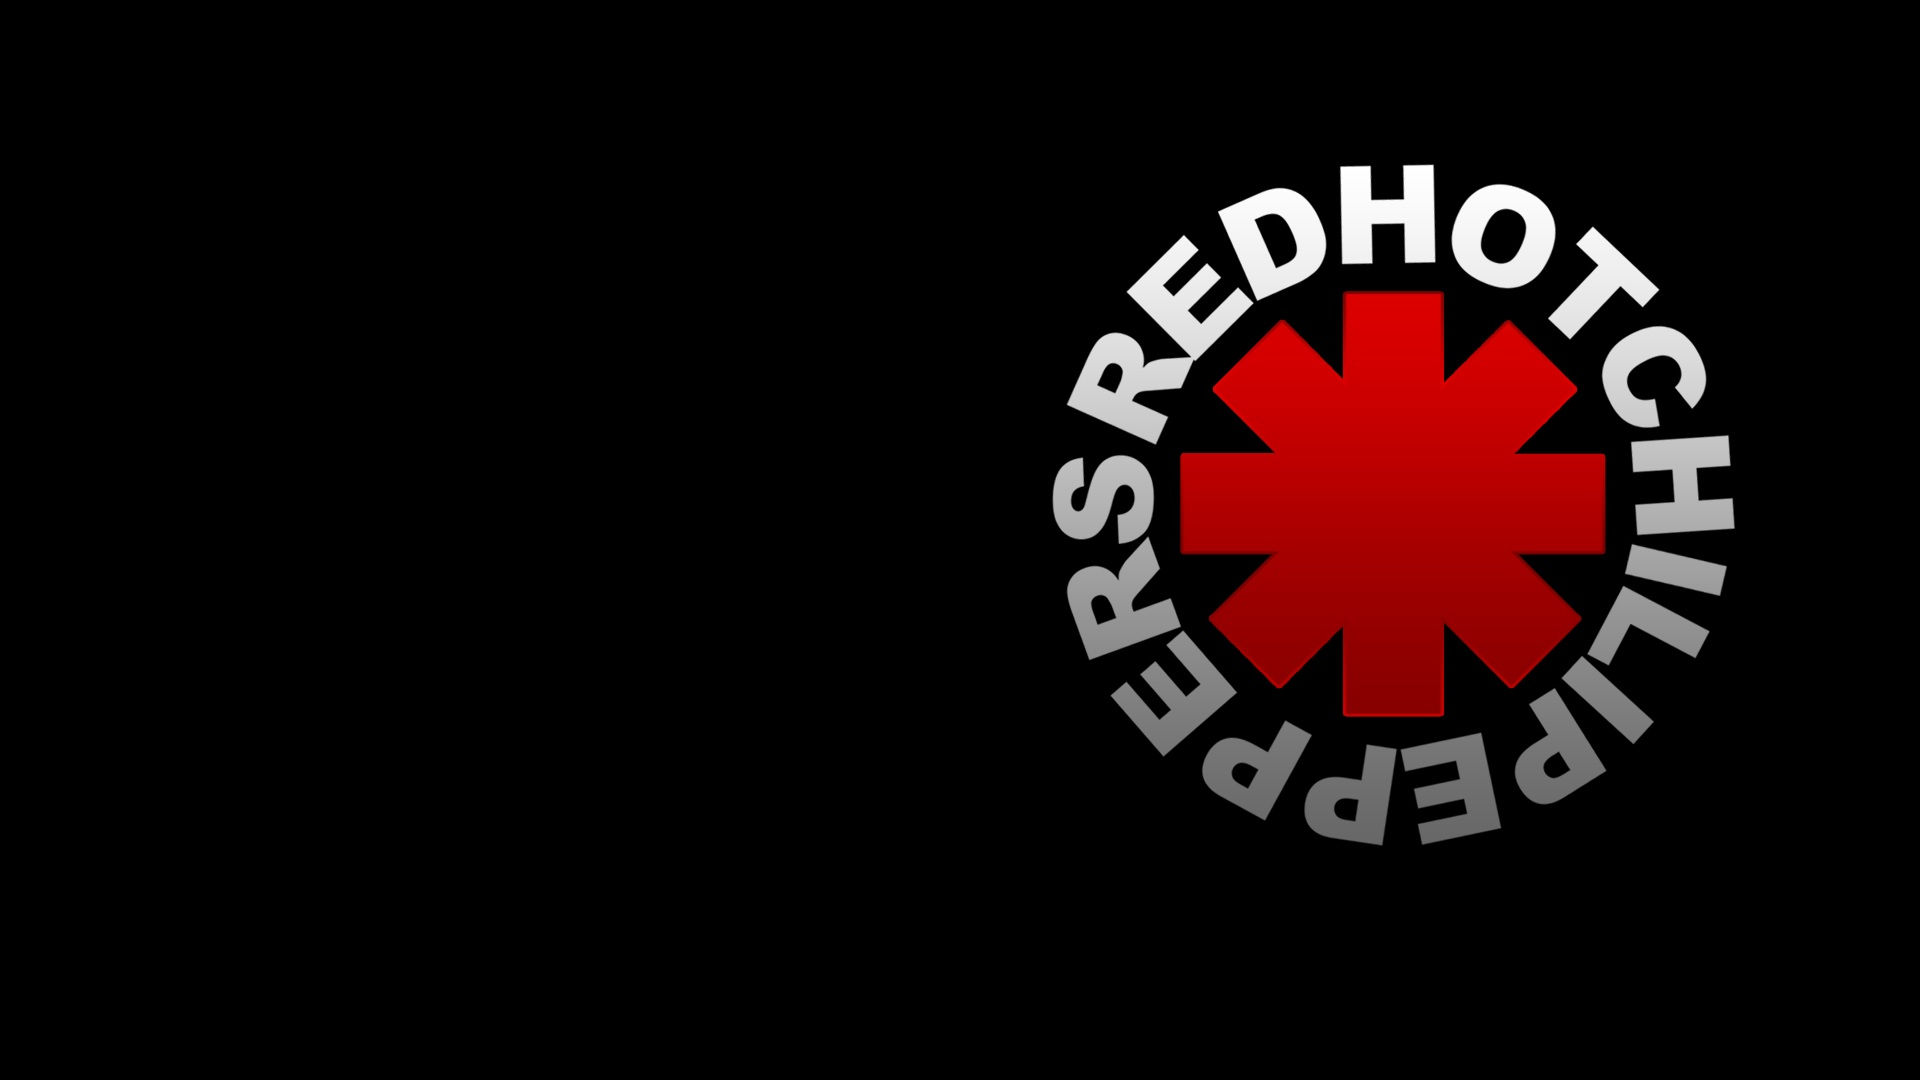 ... red-hot-chili-peppers-logo-wallpaper ...